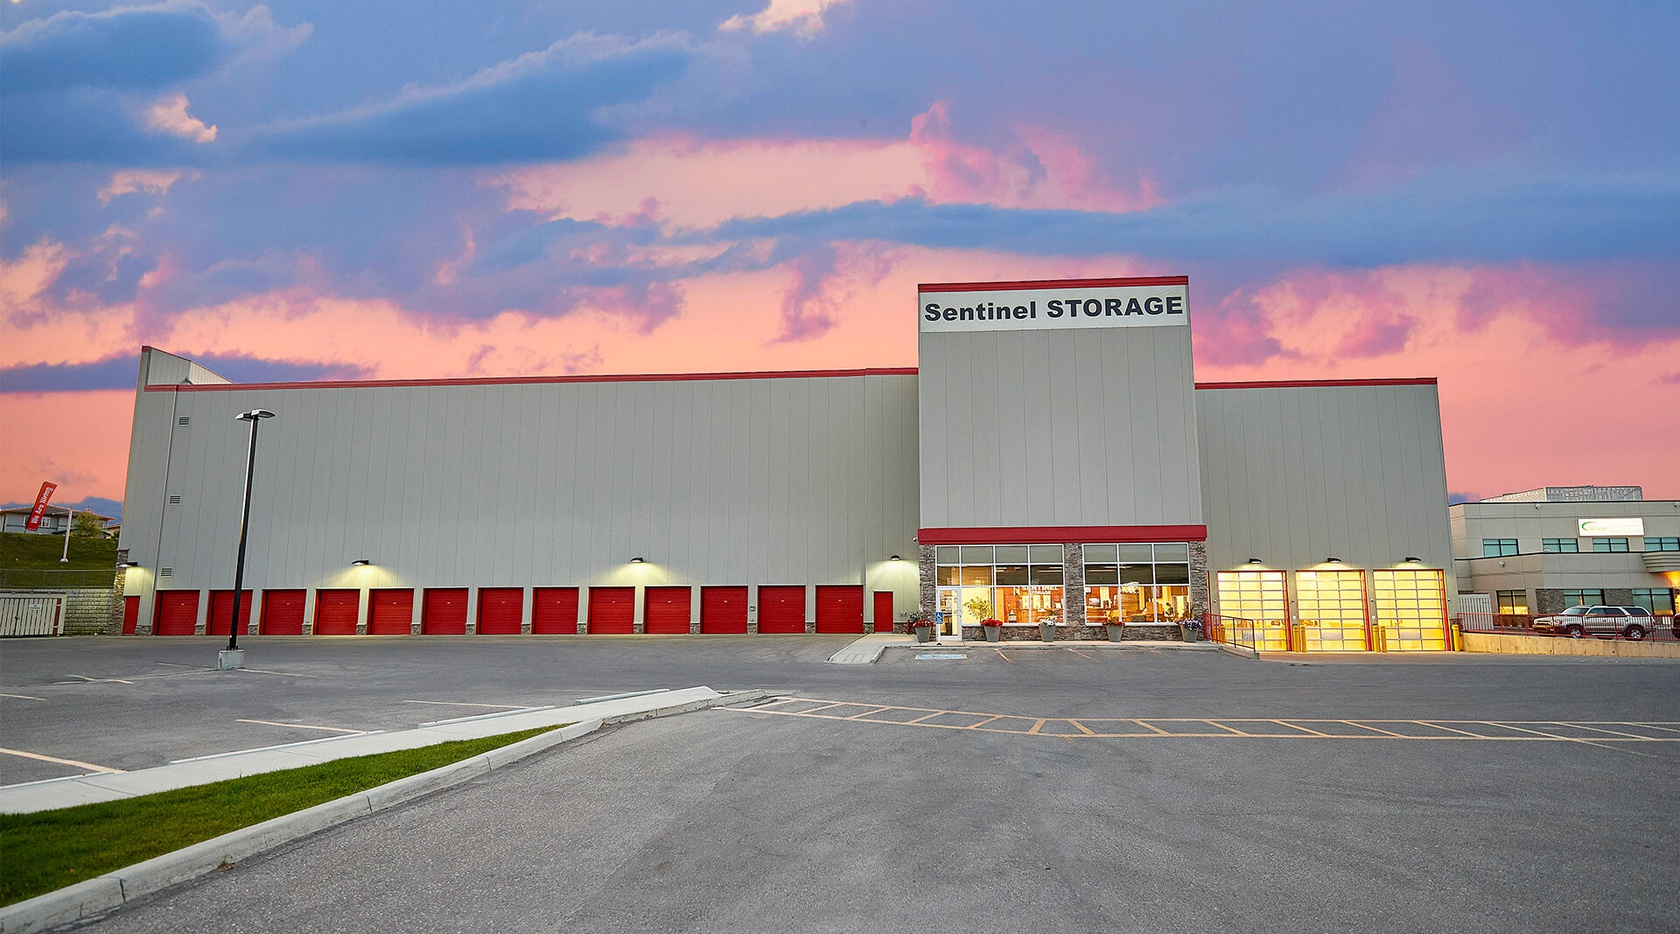 Rent Calgary storage units at 3000, 1800 194 Ave SE. We offer a wide-range of affordable self storage units and your first 4 weeks are free!